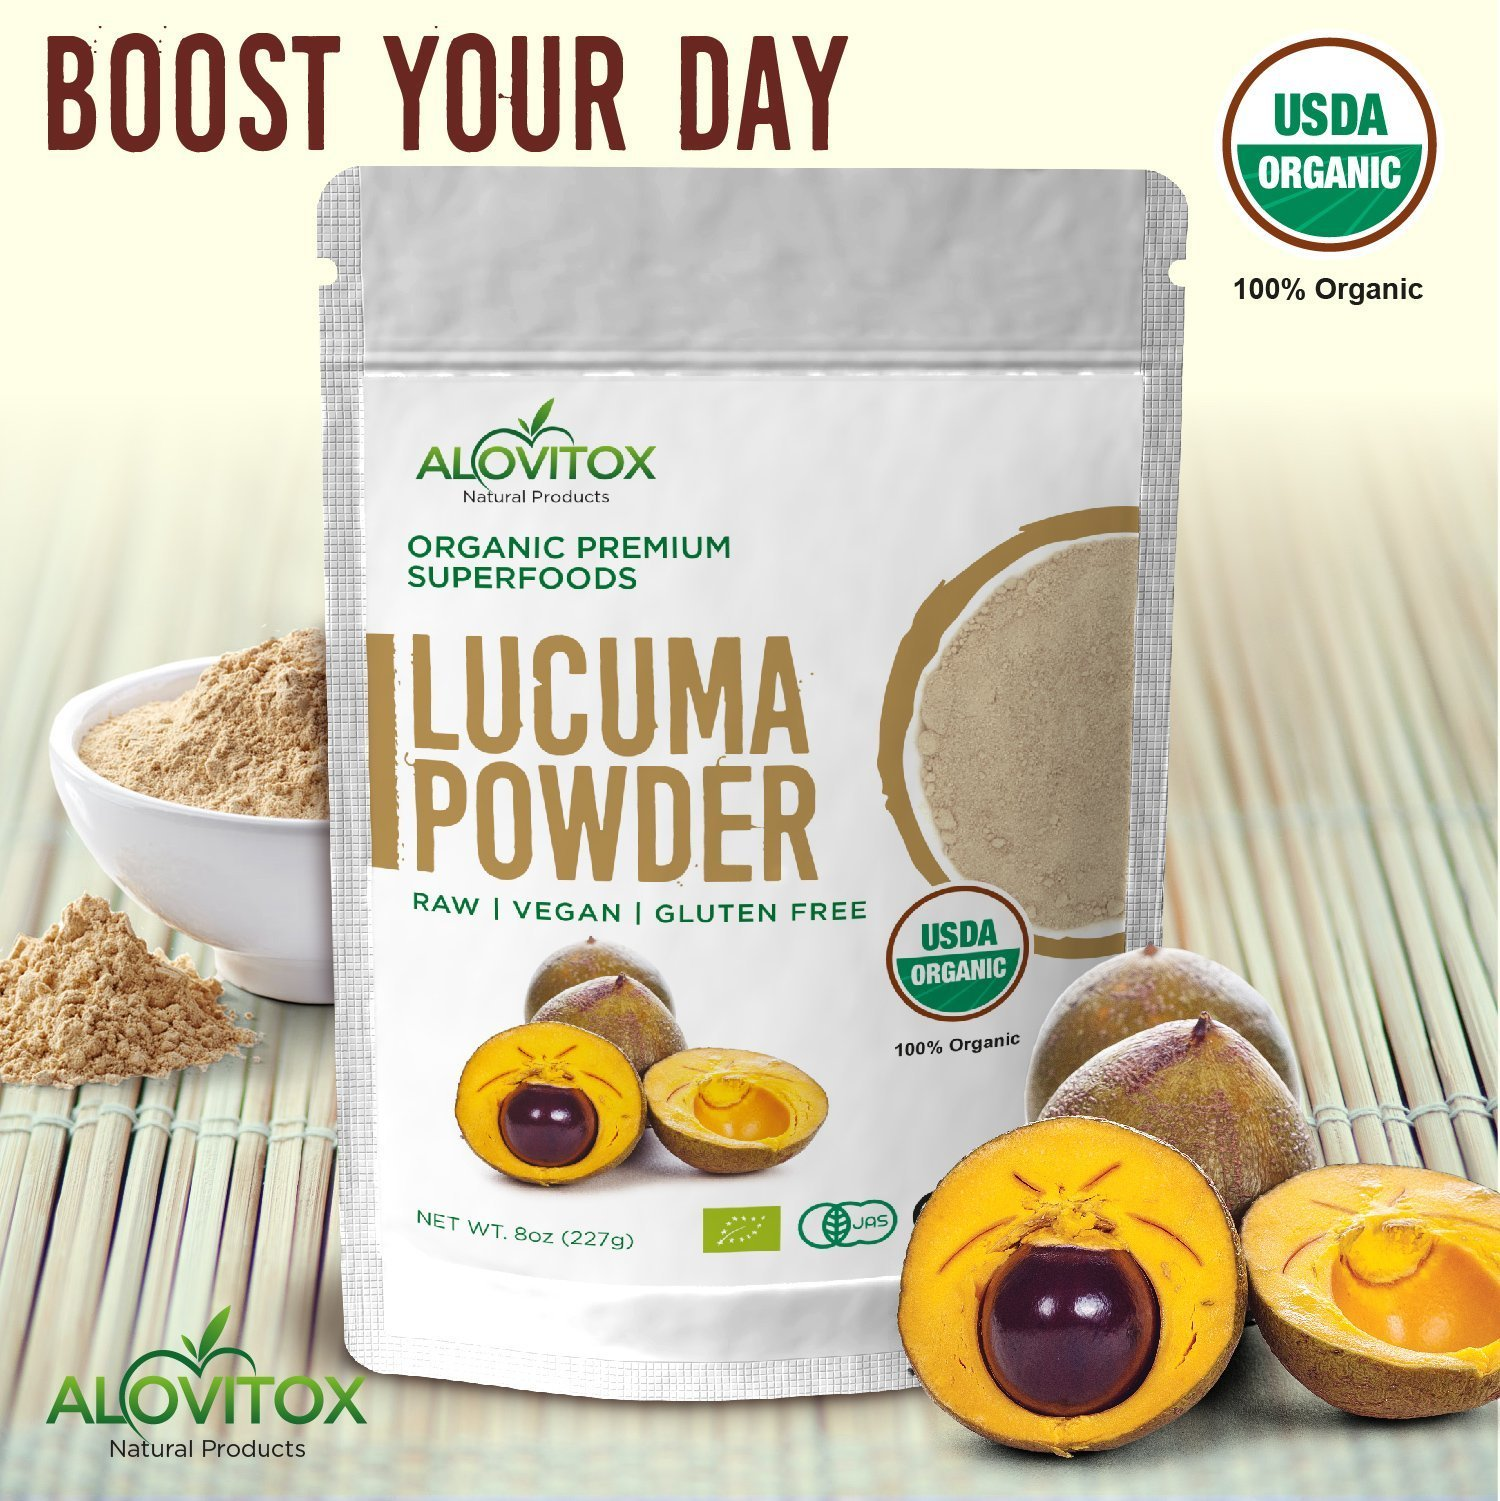 Lucuma Powder Superfood - Certified Organic, Raw, Pure and Healthy - Smoothie Natural Sweetener, Vegan, Gluten Free 8oz Pouch - Great in Yogurt, Smoothies, Ice Cream - By Alovitox by ALOVITOX (Image #6)